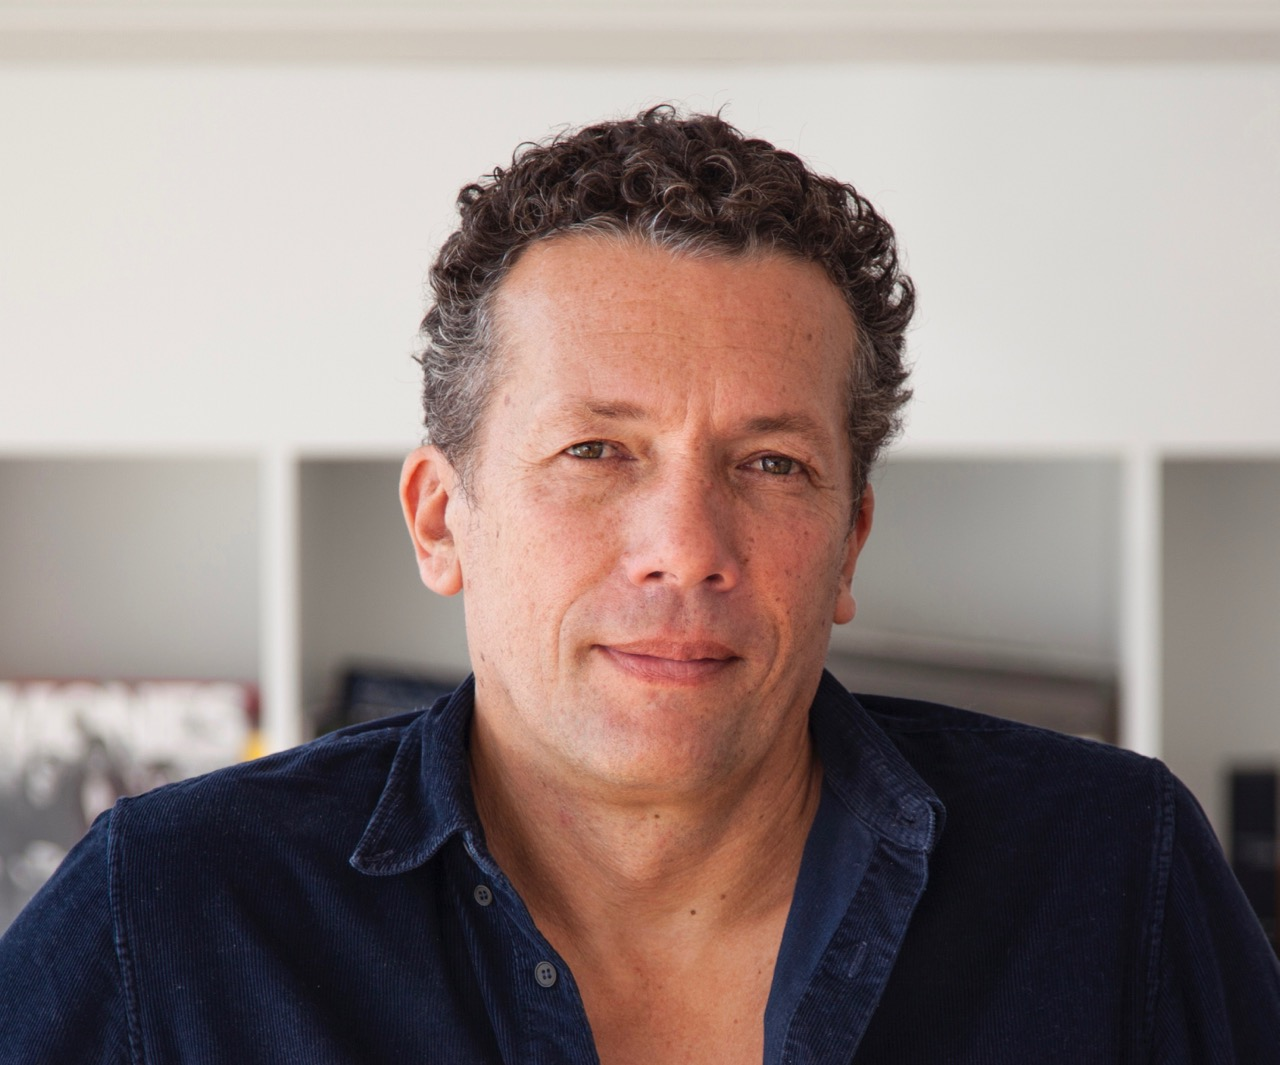 Bestads Six of the Best reviewed by Jean-François Sacco, co-founder and CCO, Rosapark, Paris